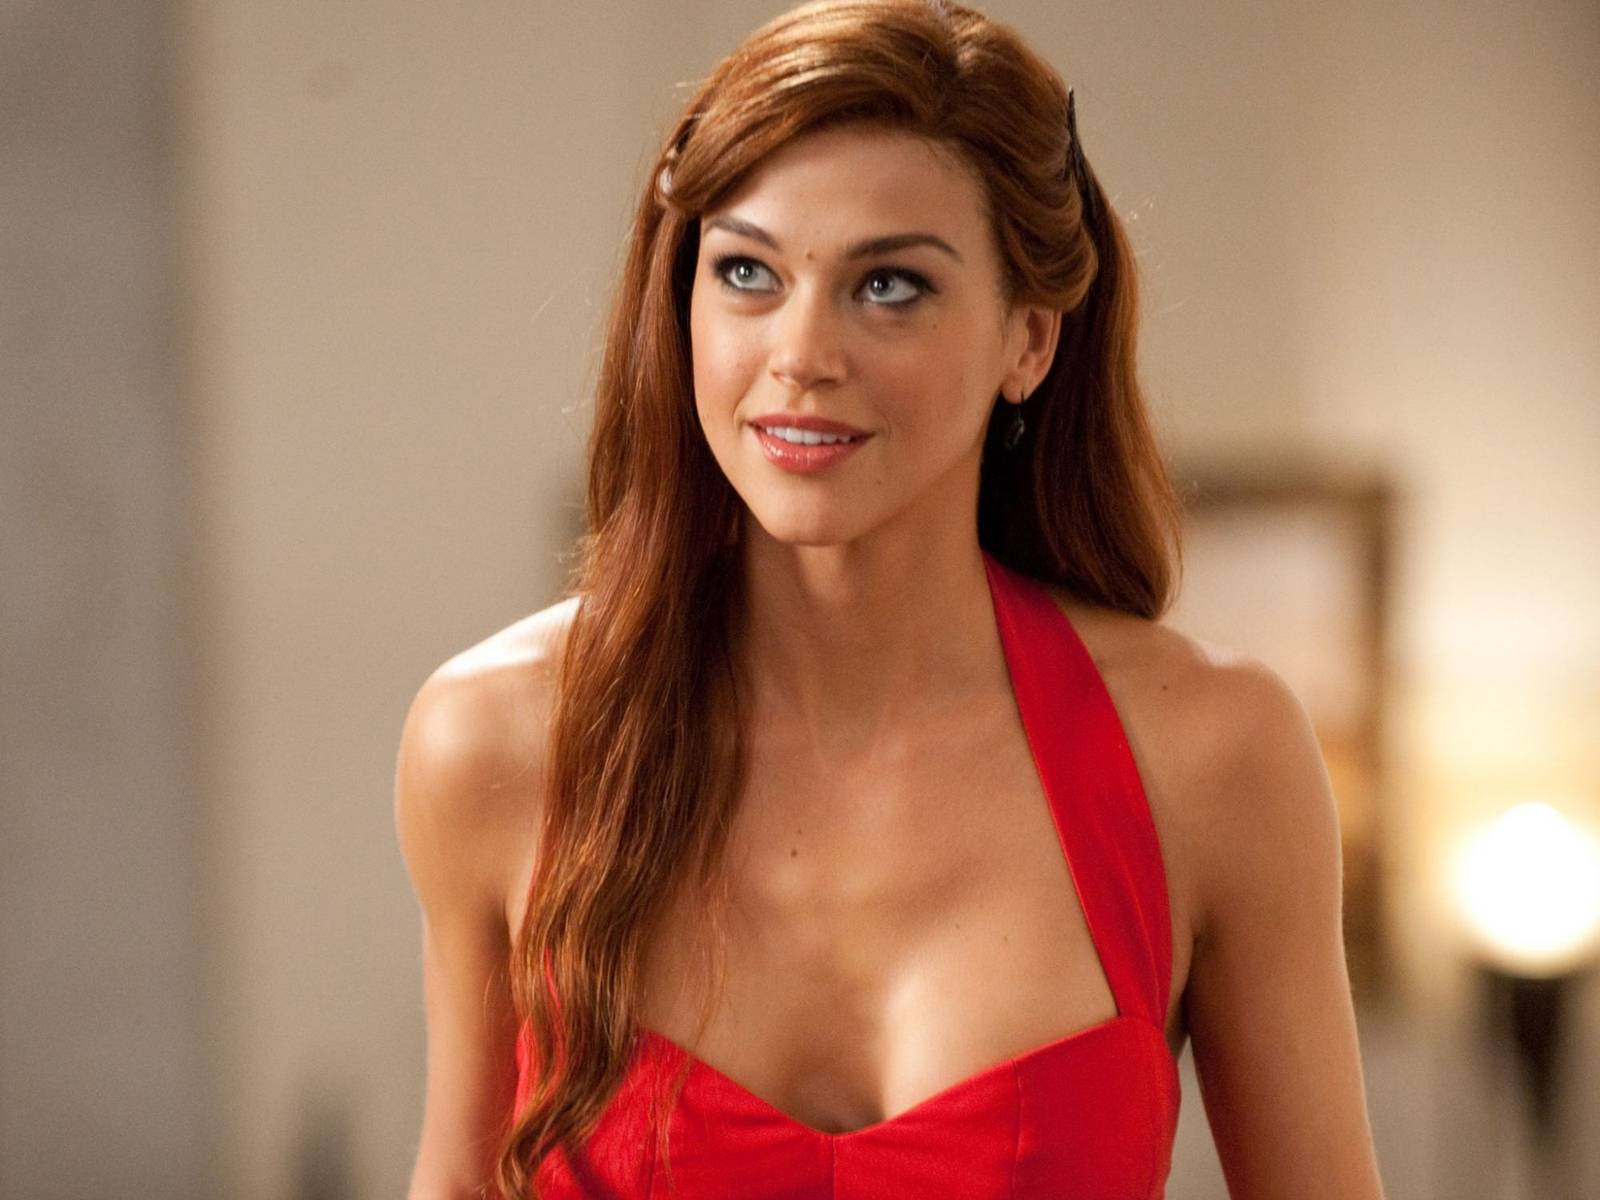 Adrianne Palicki To Play Mockingbird On Agents Of Shield - Bleeding Cool Comic Book, Movie, TV News